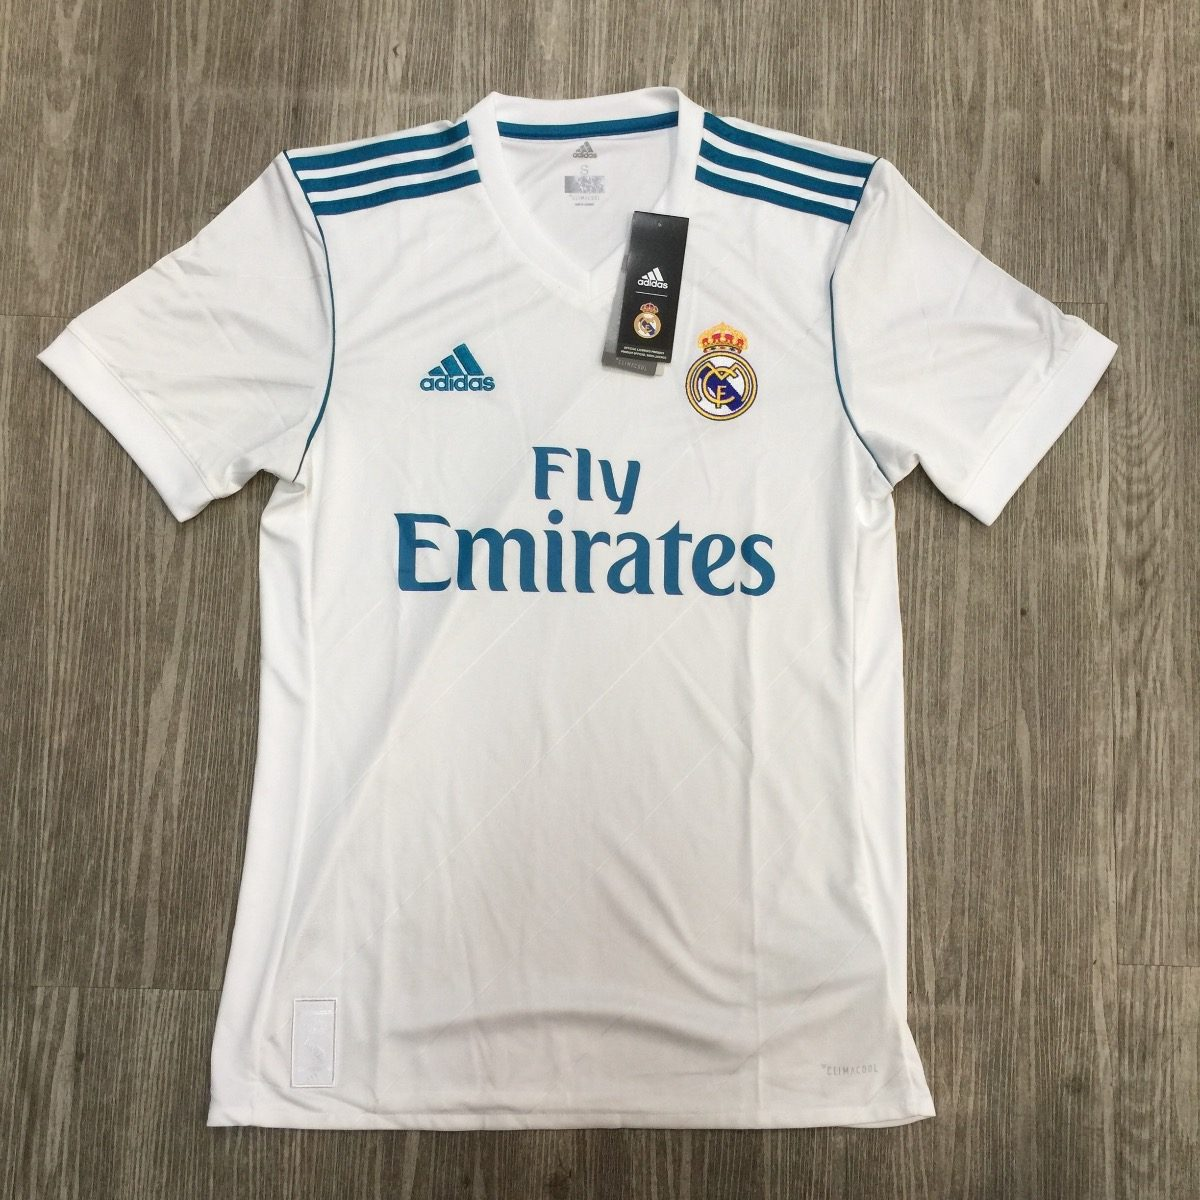 jersey playera real madrid az8059 original look tendy. Cargando zoom... jersey  real madrid. Cargando zoom. 04eb95abbd80c